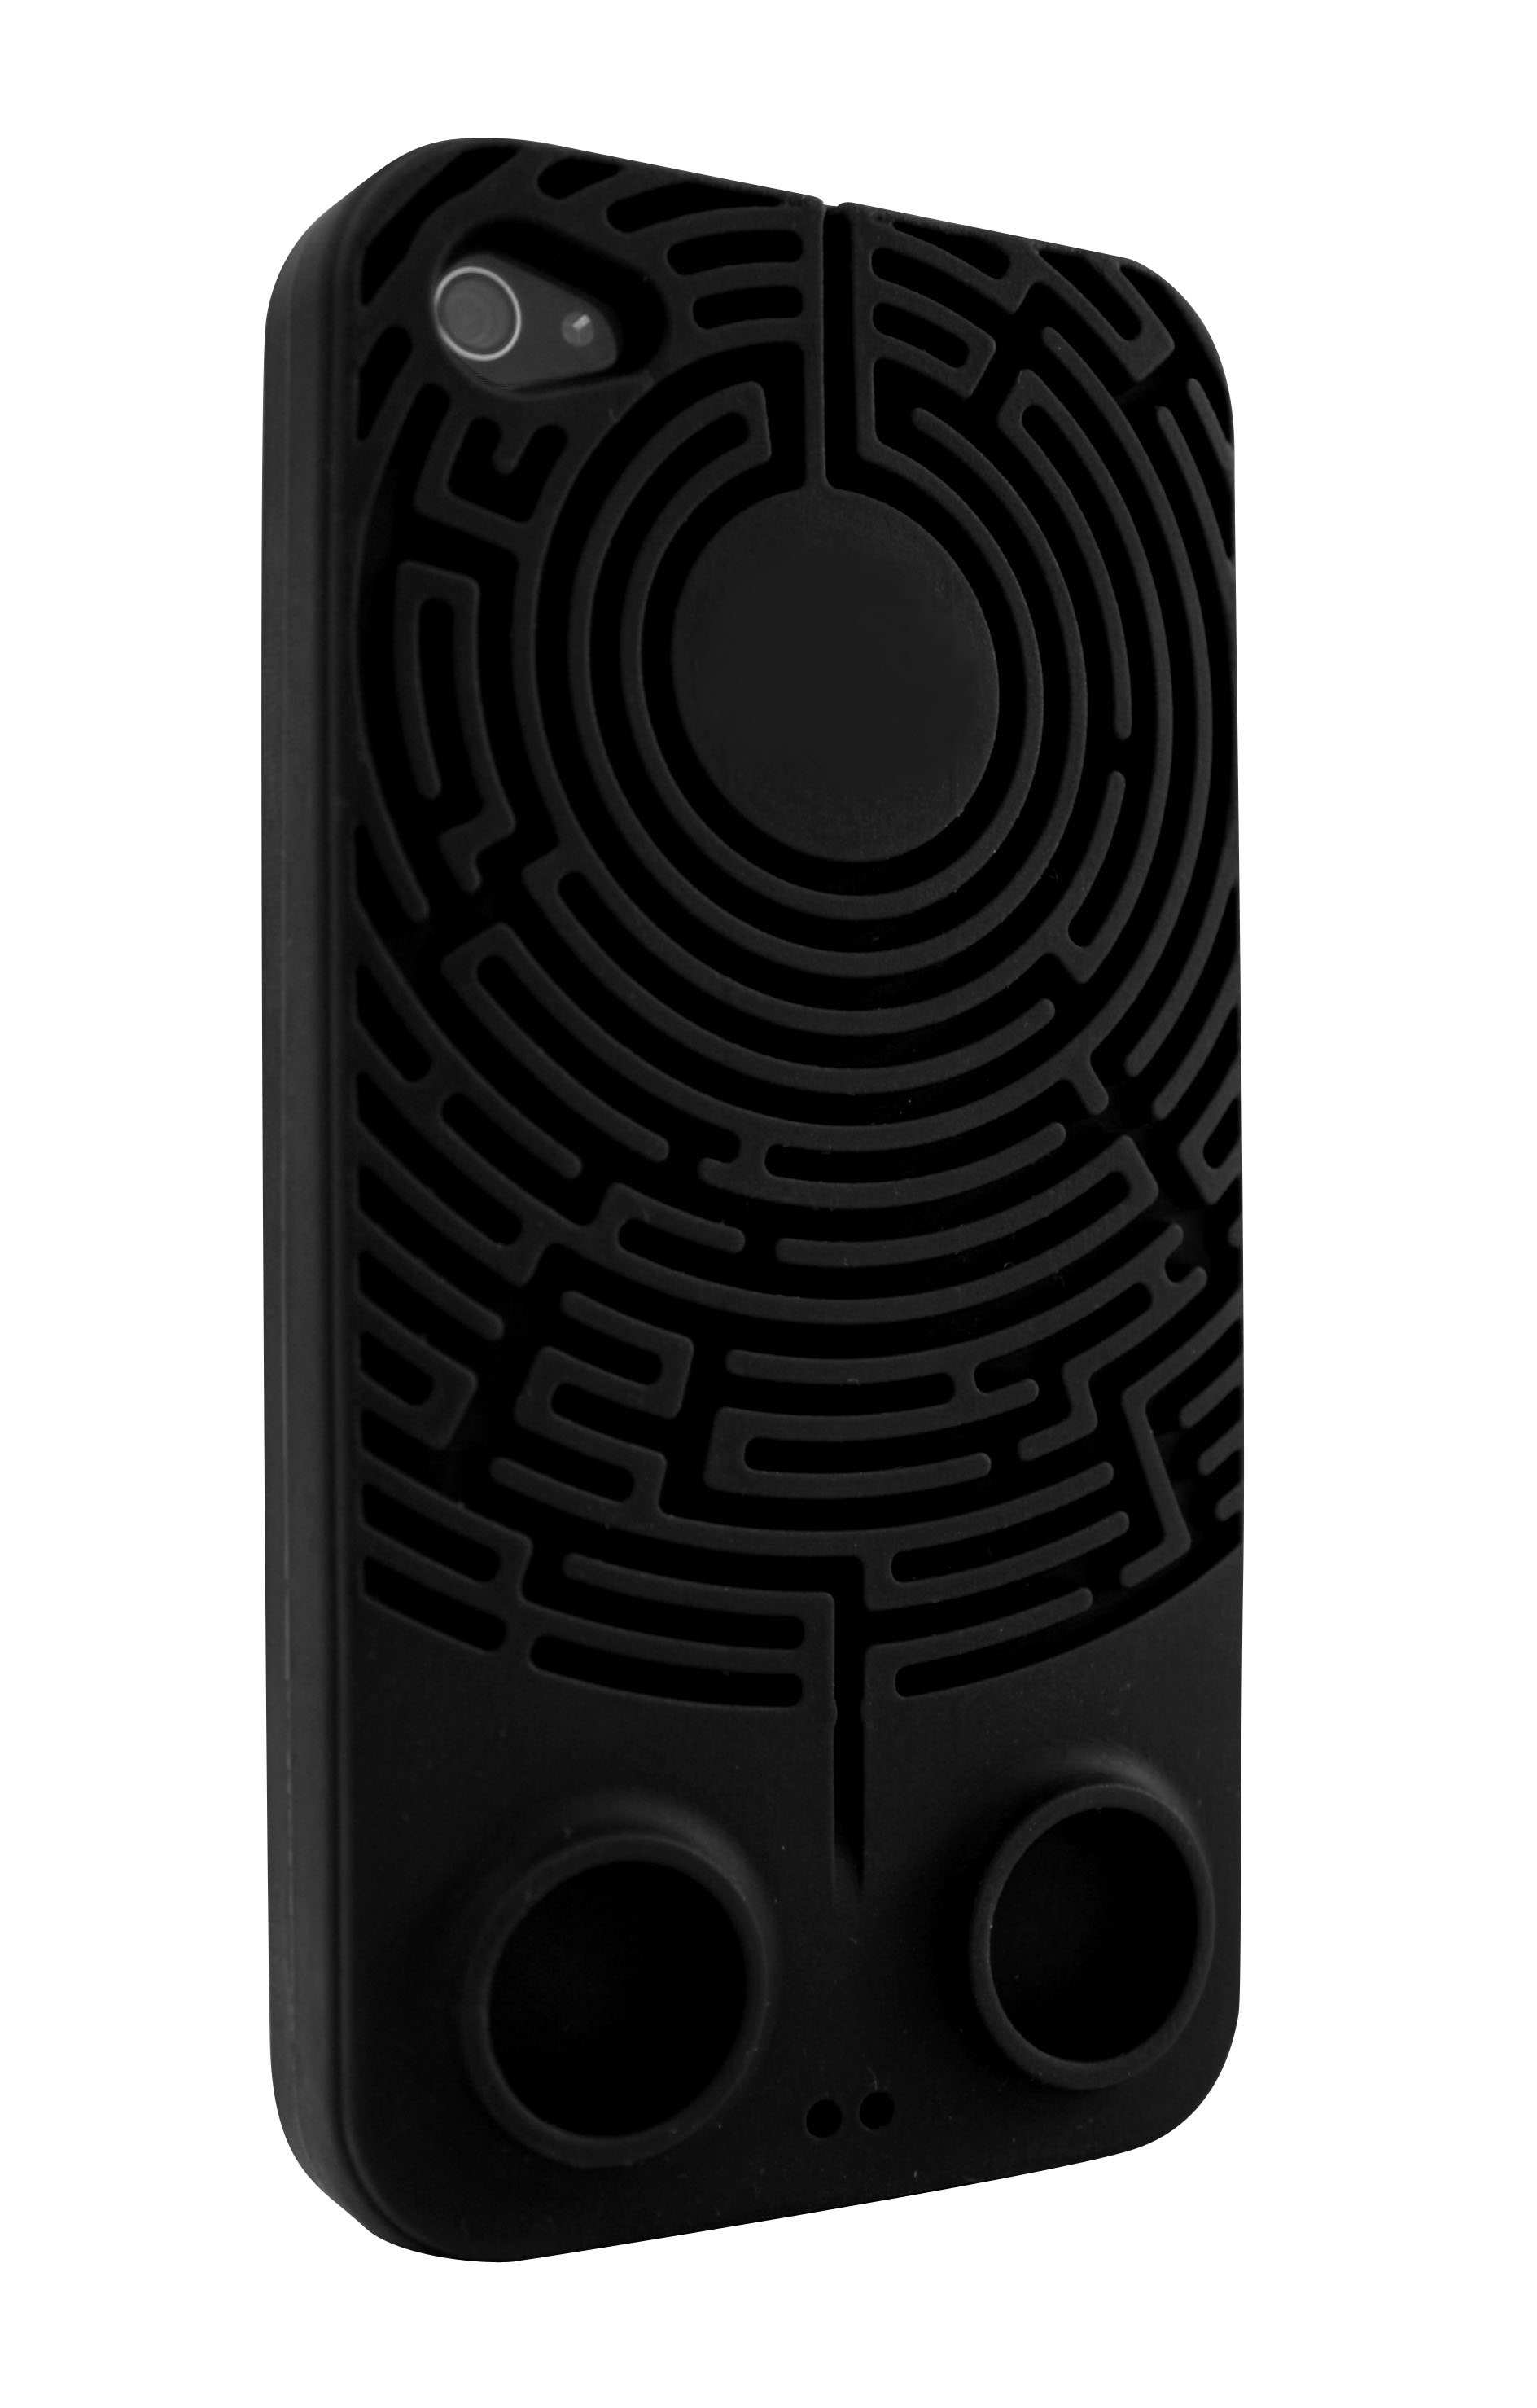 Wisdomaze Protective Silicone Case for iPhone 4 - 4s / With Built in Headphone Tidy Maze / Fun Gify Idea from Locomocean Ltd   Made By Locomocean Ltd   £4.94   BOUF